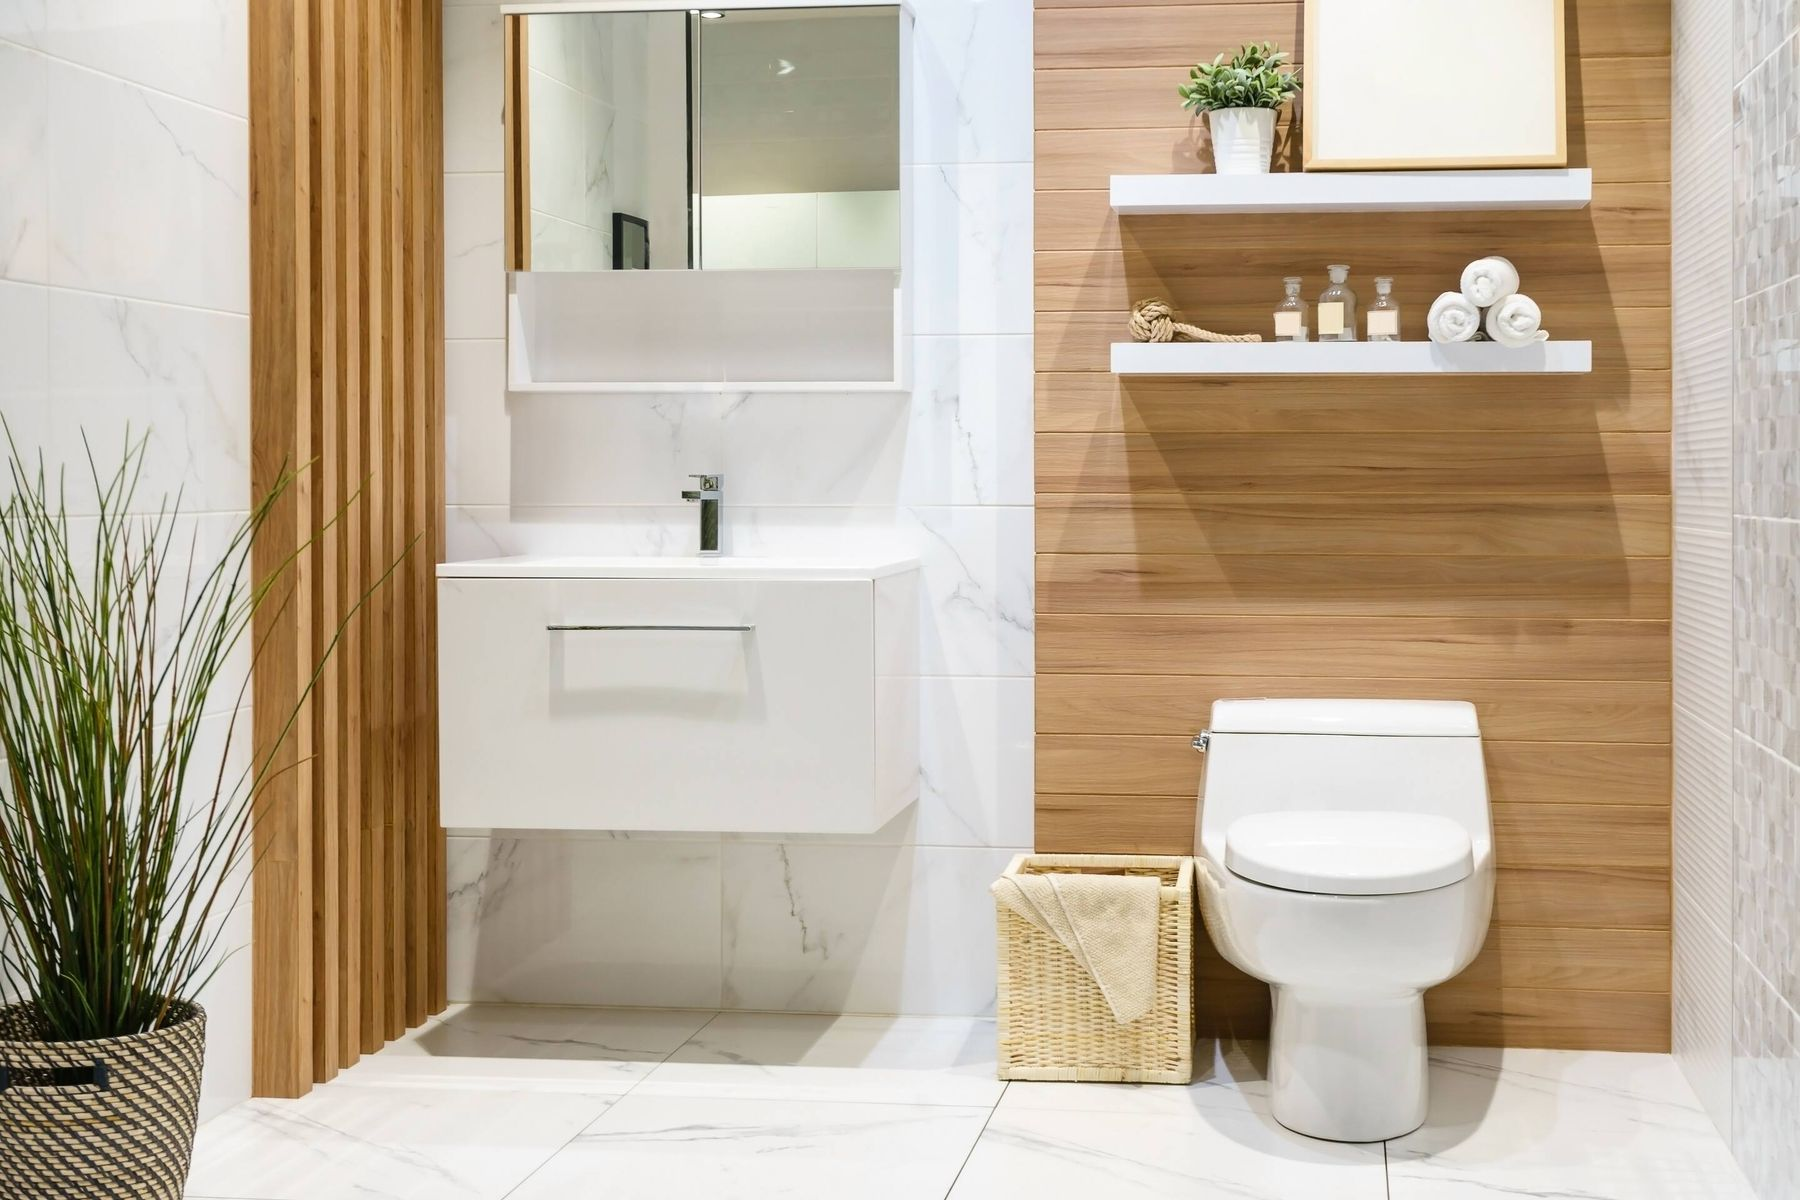 Easy Tips to Keep Your Bathrooms Sparkling Clean This Diwali